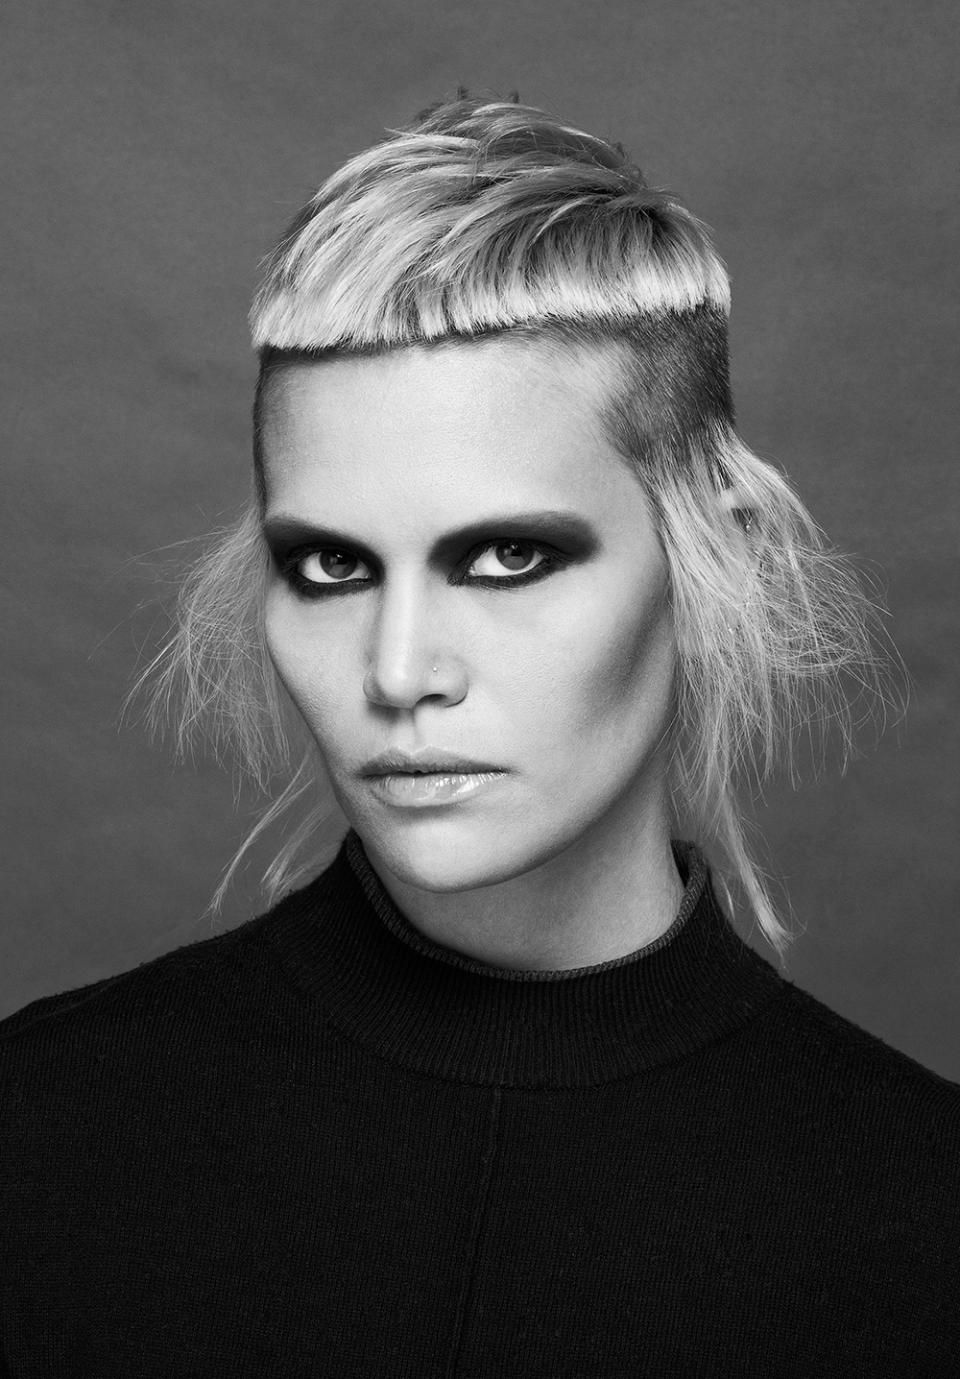 naha finalists student hairstylist events aveda institute